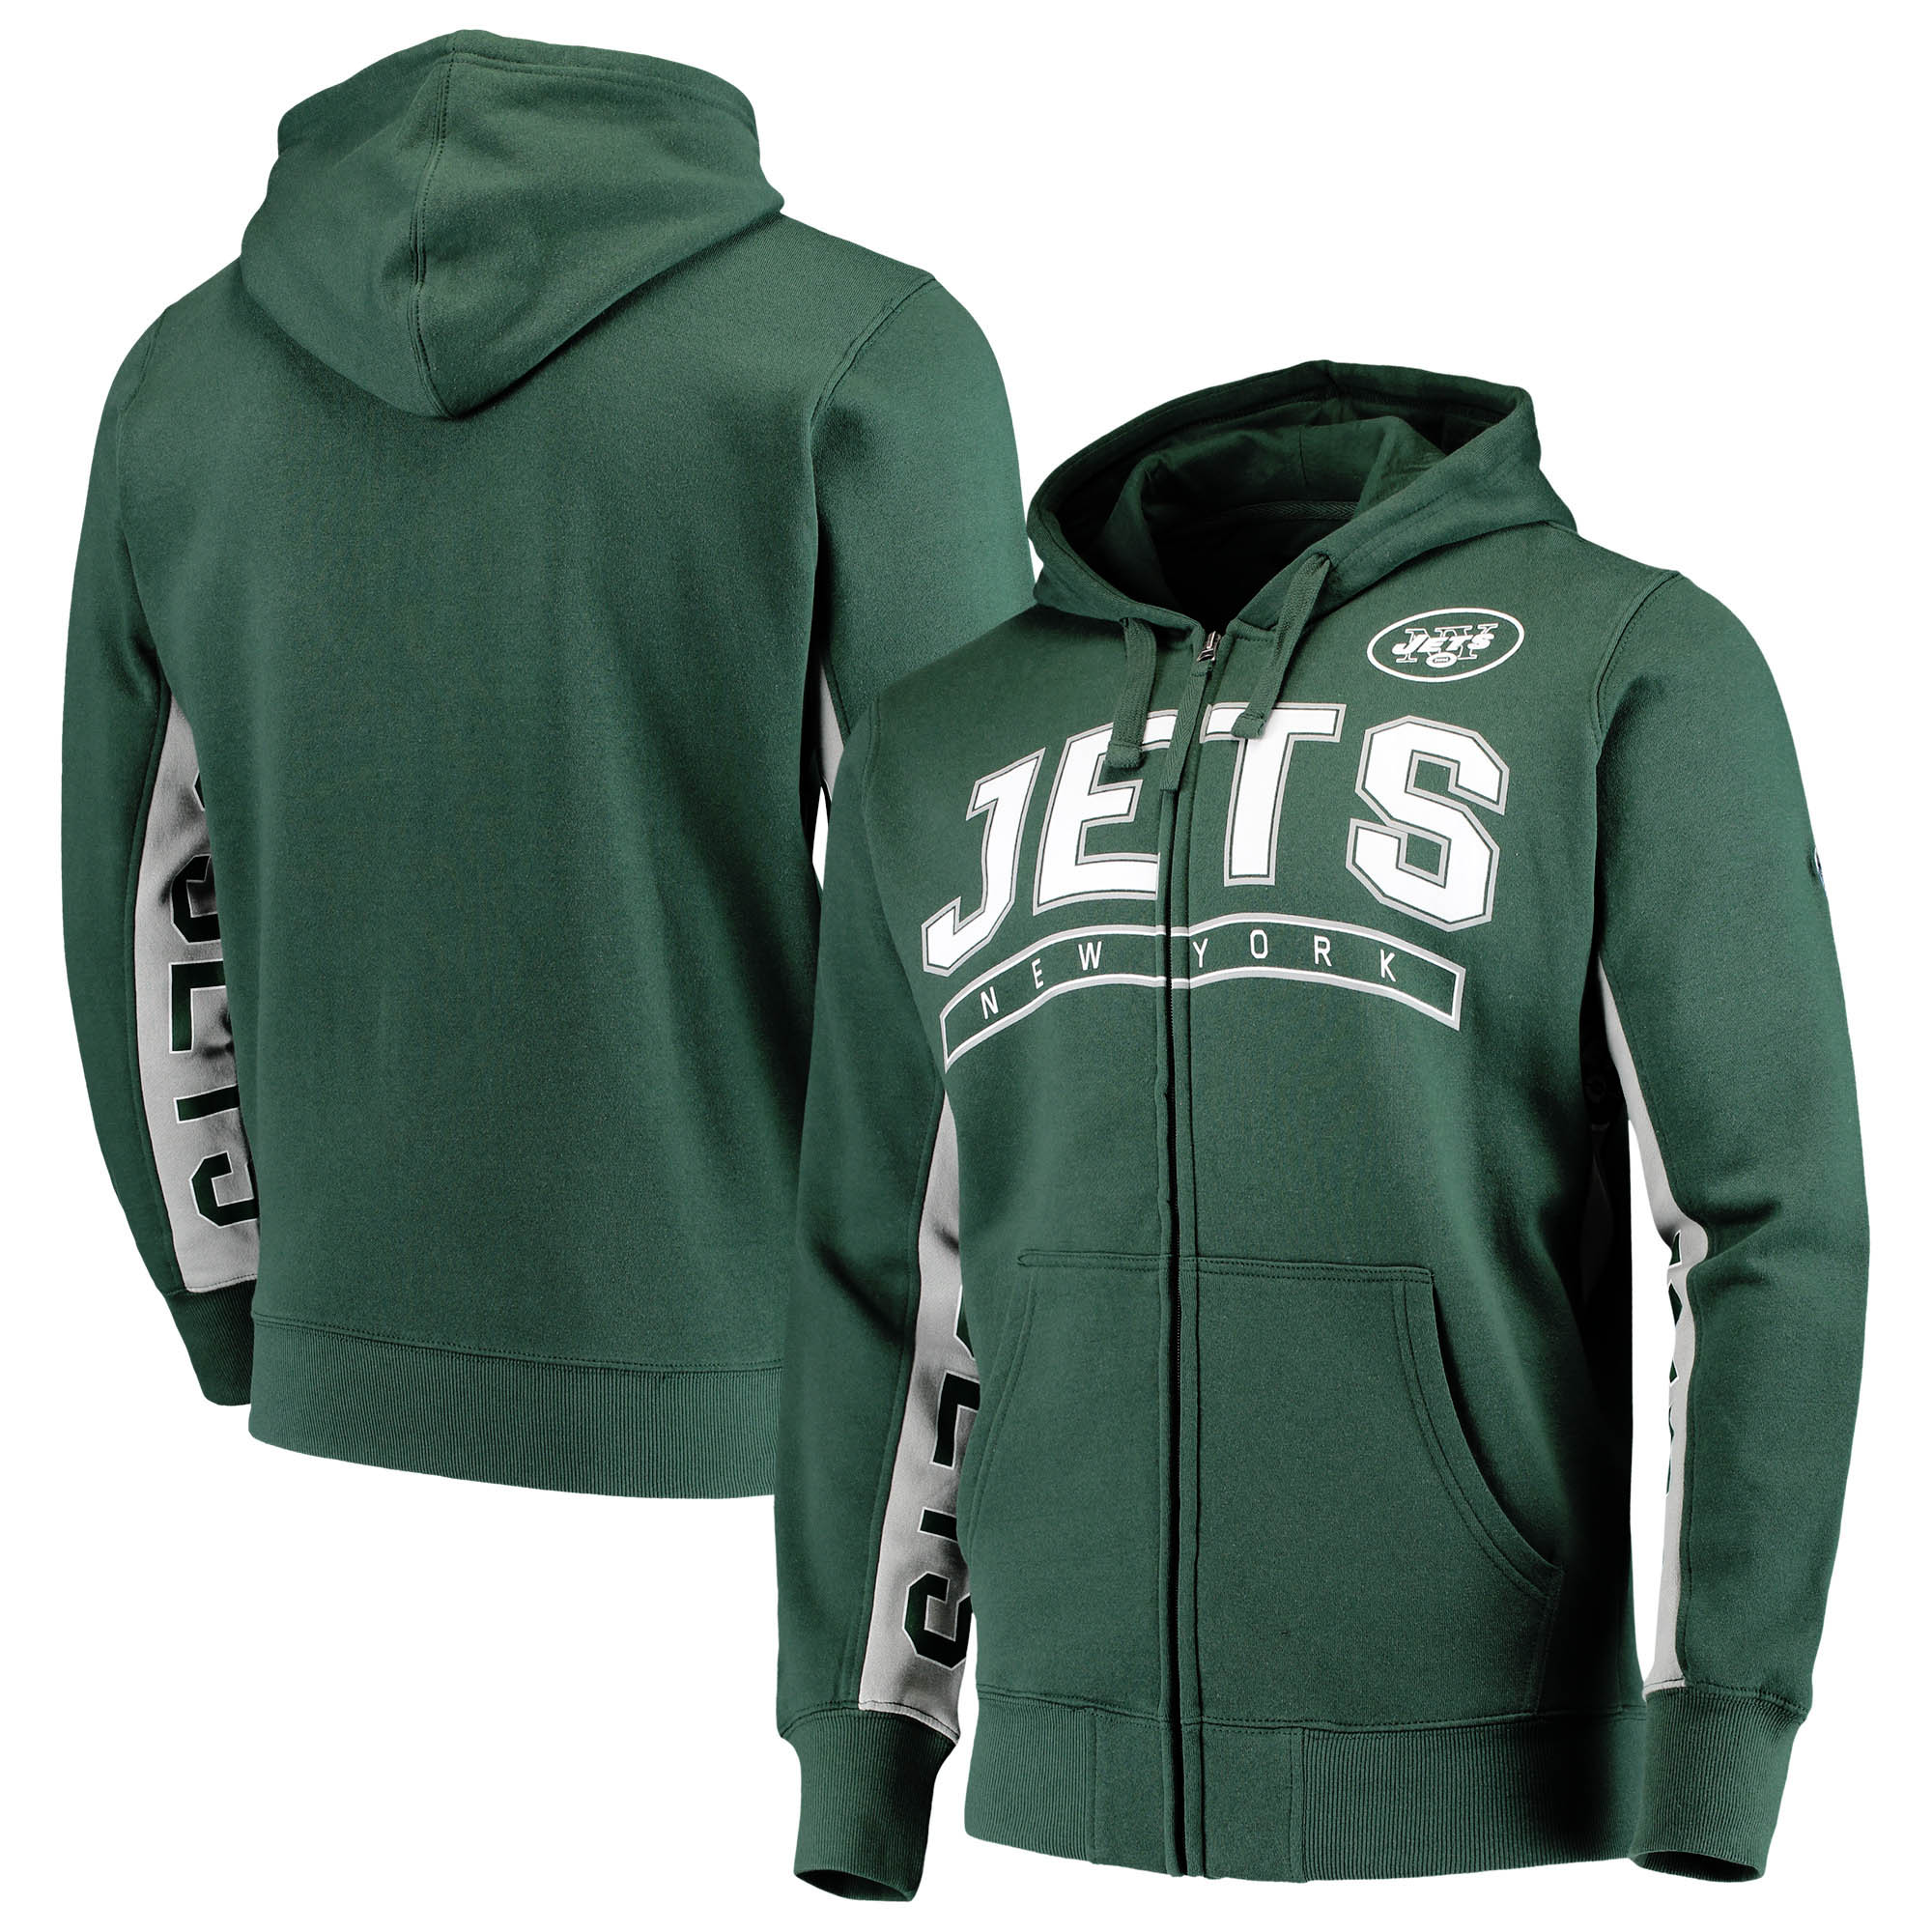 New York Jets Hands High Blowout Full-Zip Hoodie - Green/White